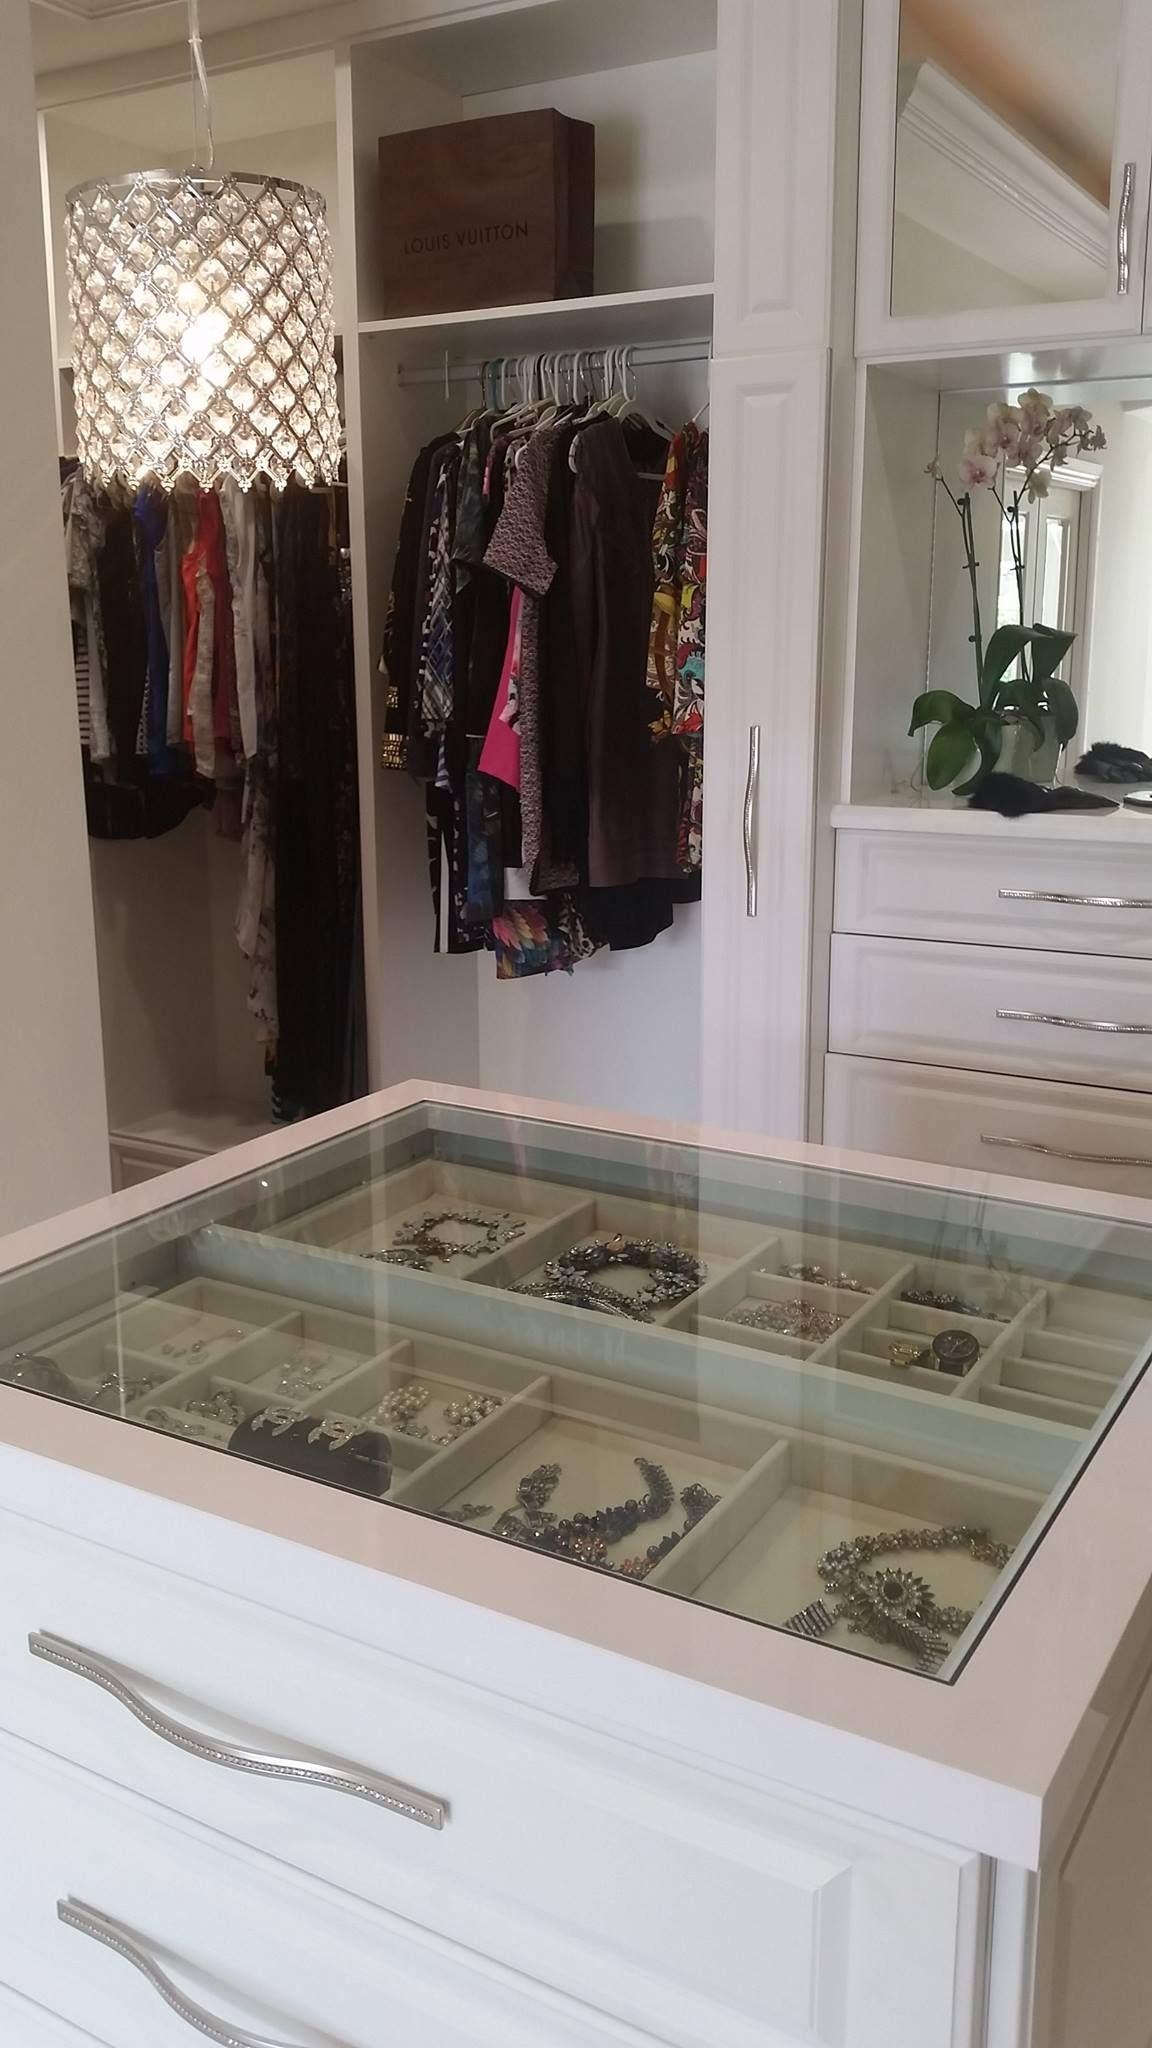 A see through center island counter top allowing you to